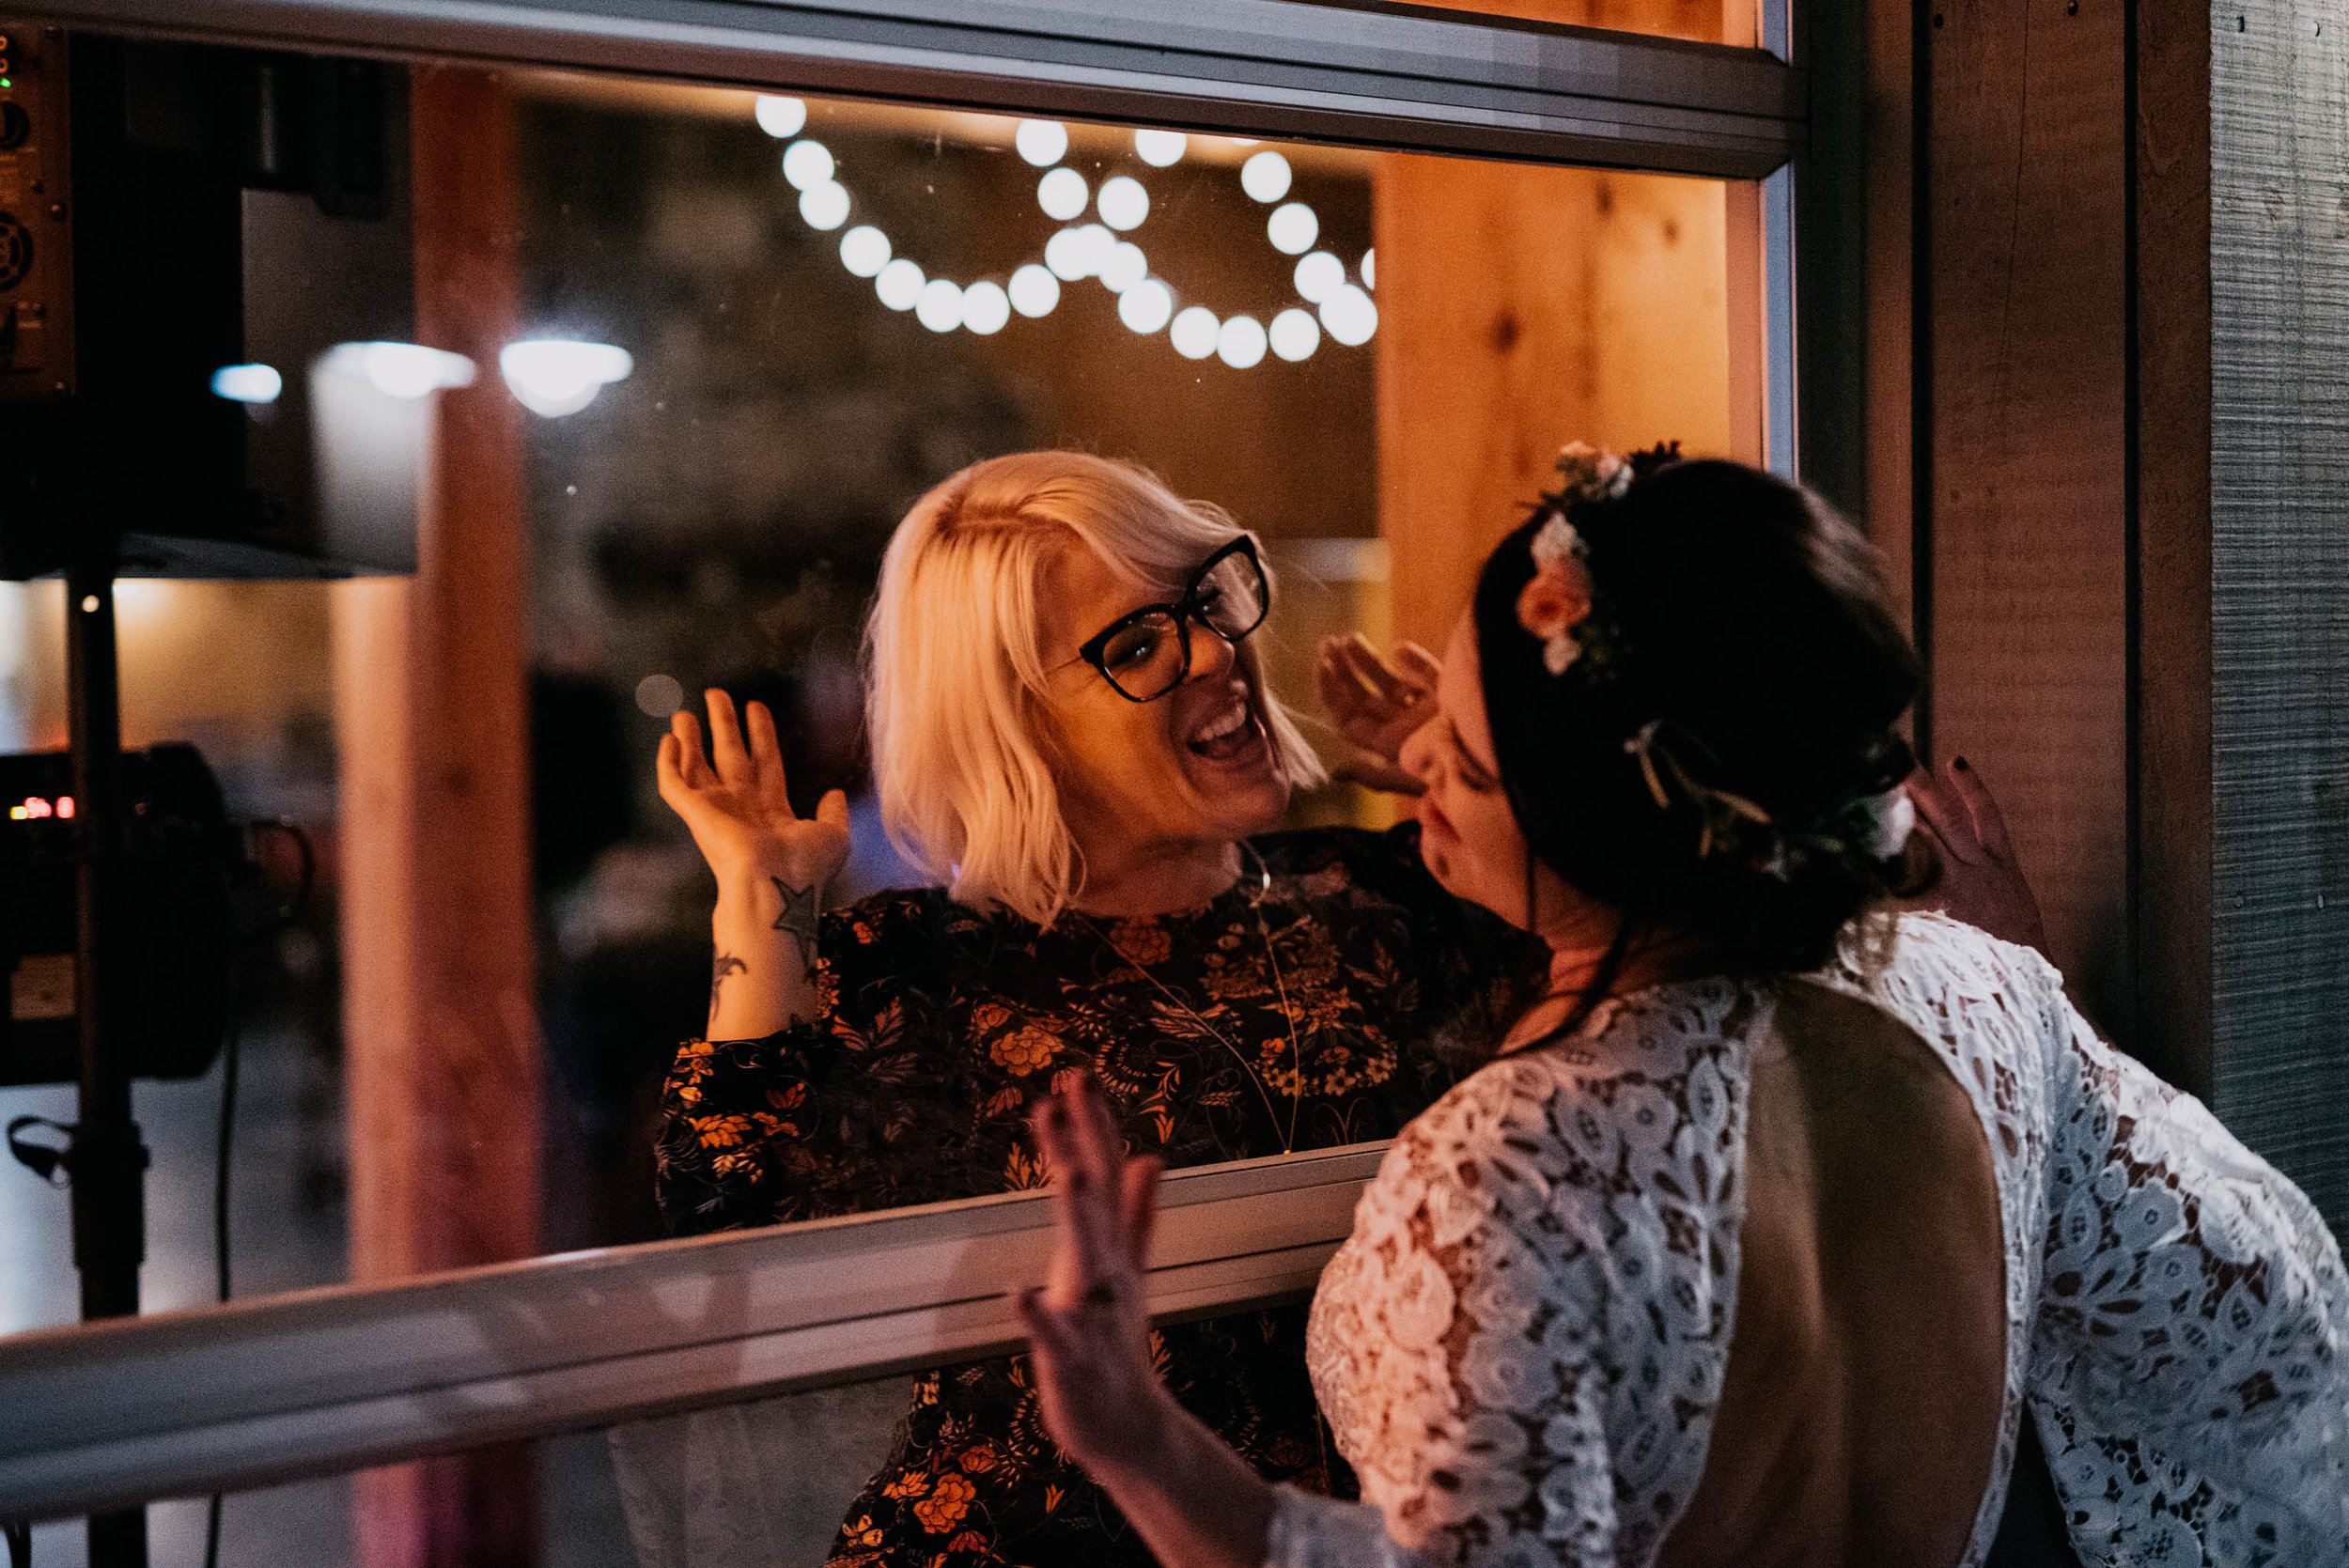 bride and her friend dancing on either side of the window